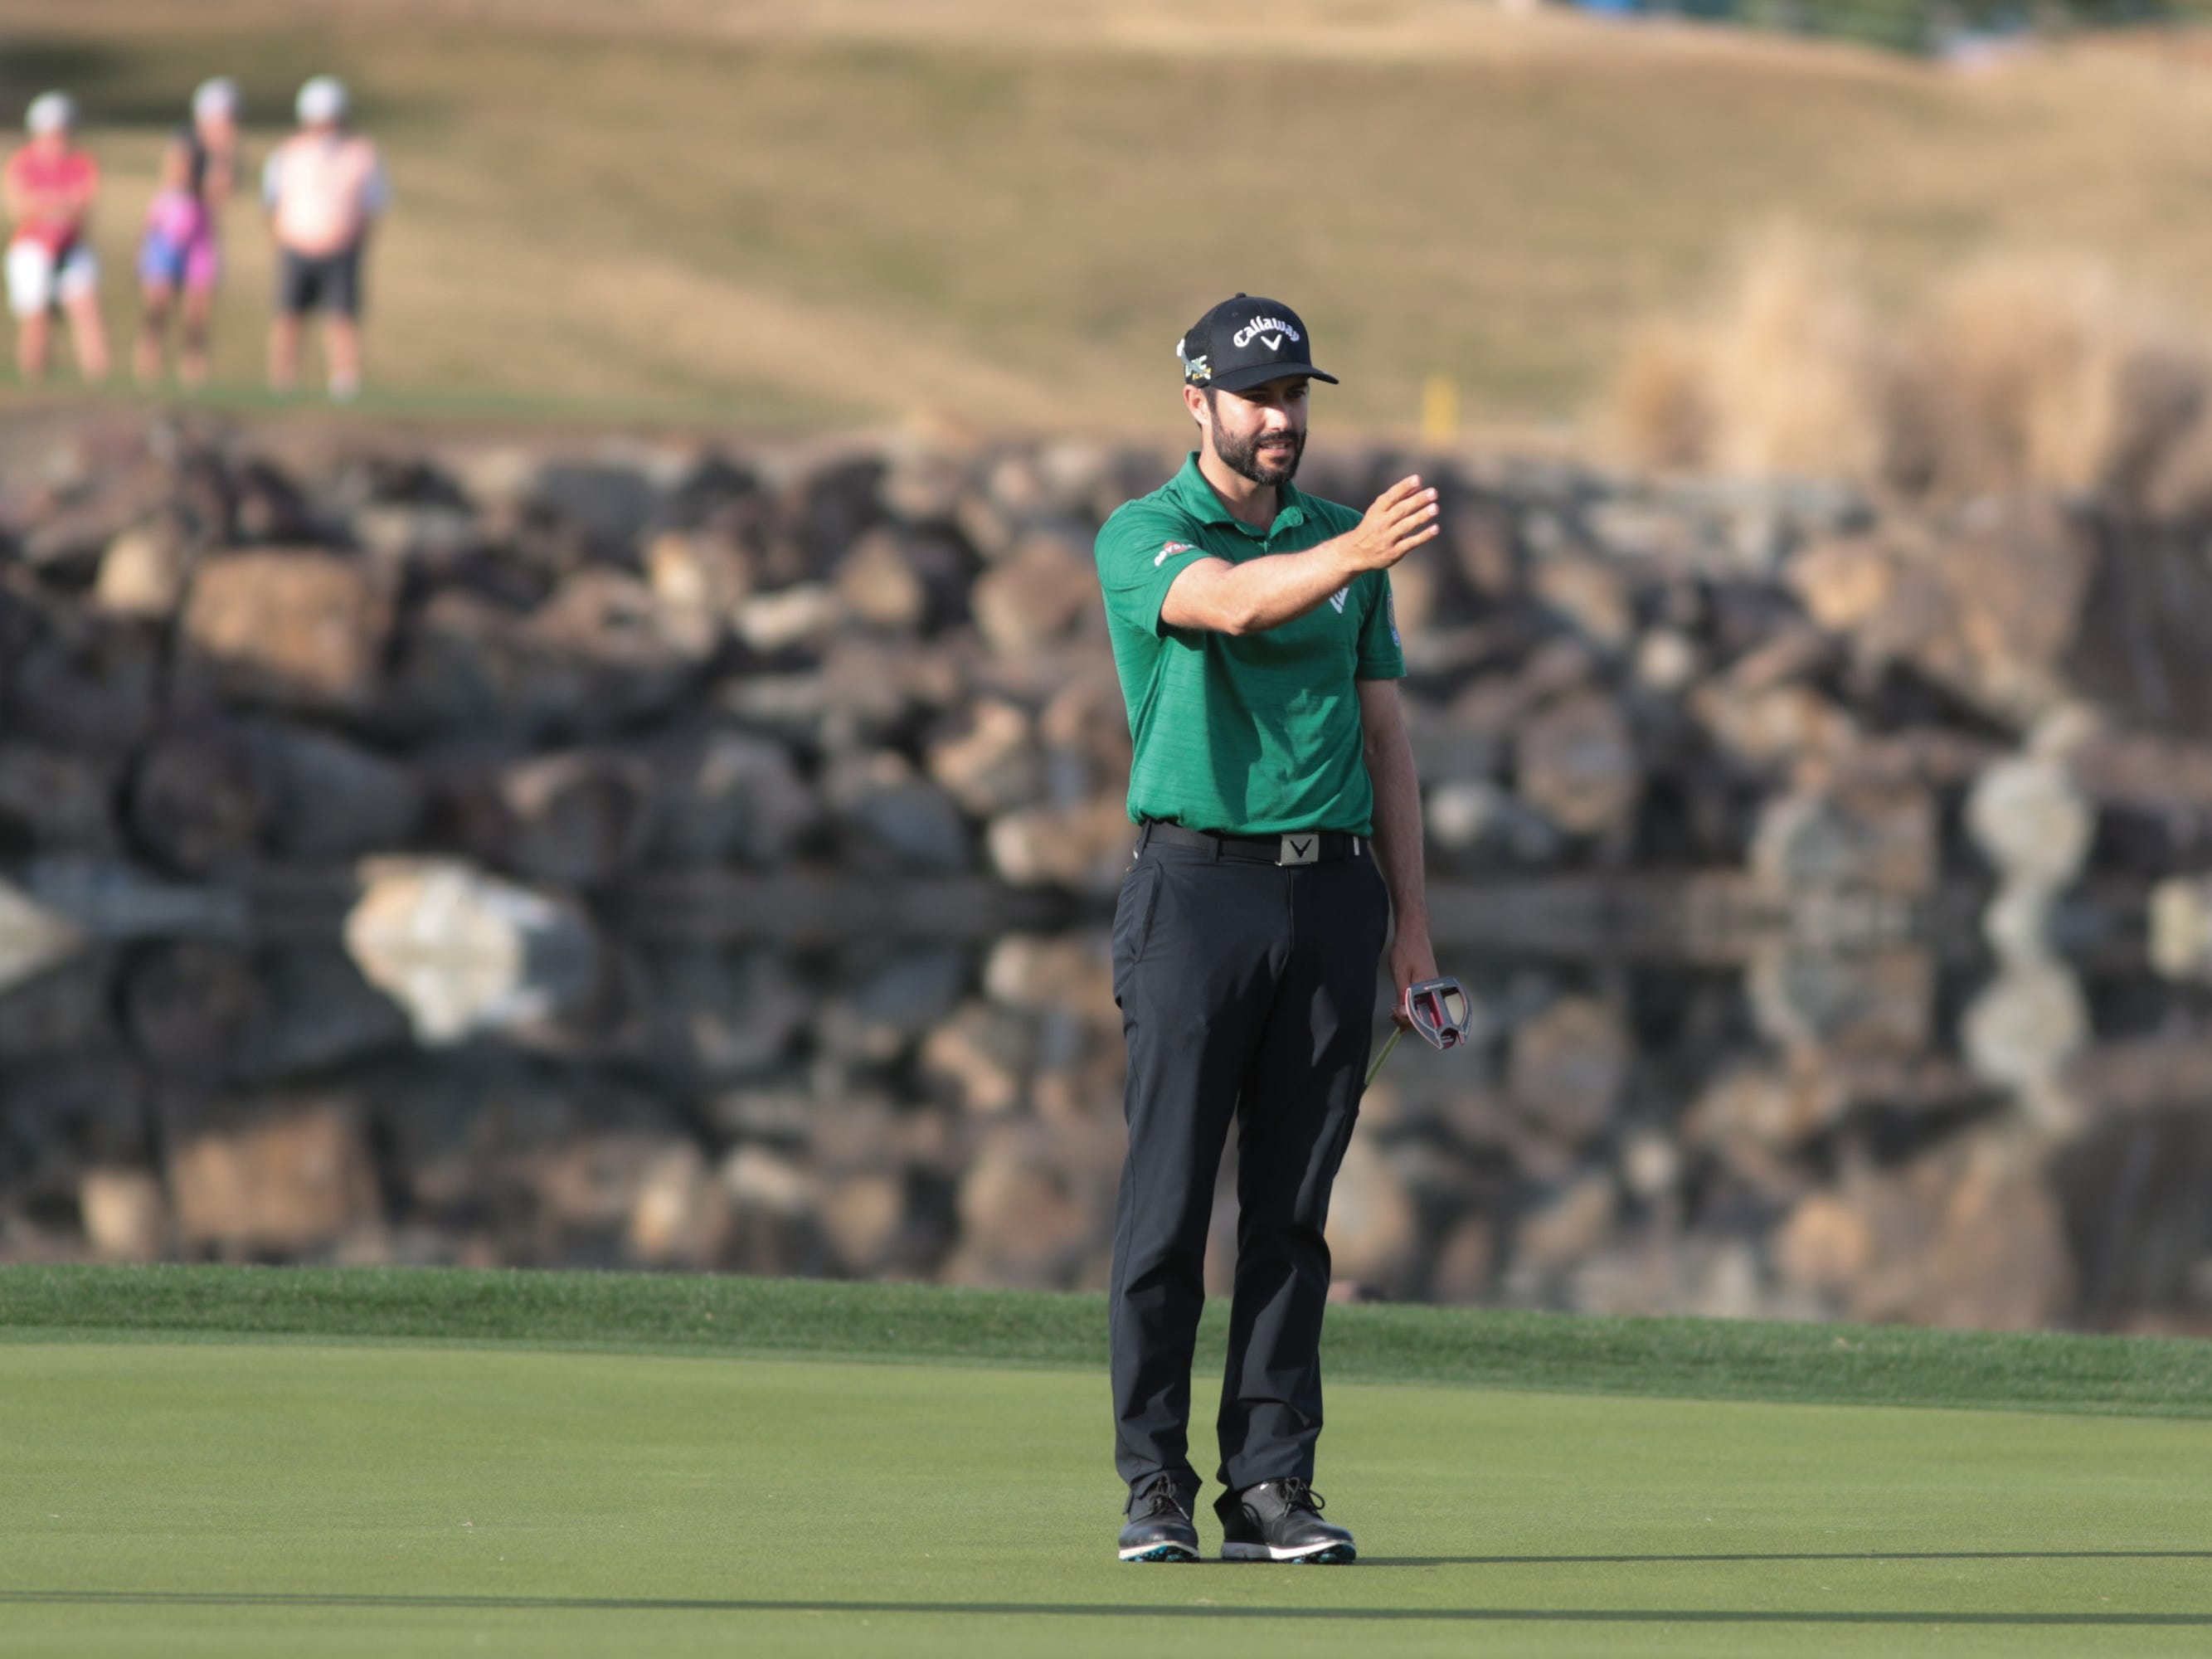 Adam Hadwin prepares to putt on the 17th hole of the 2019 Desert Classic, Sunday, January 20, 2019.